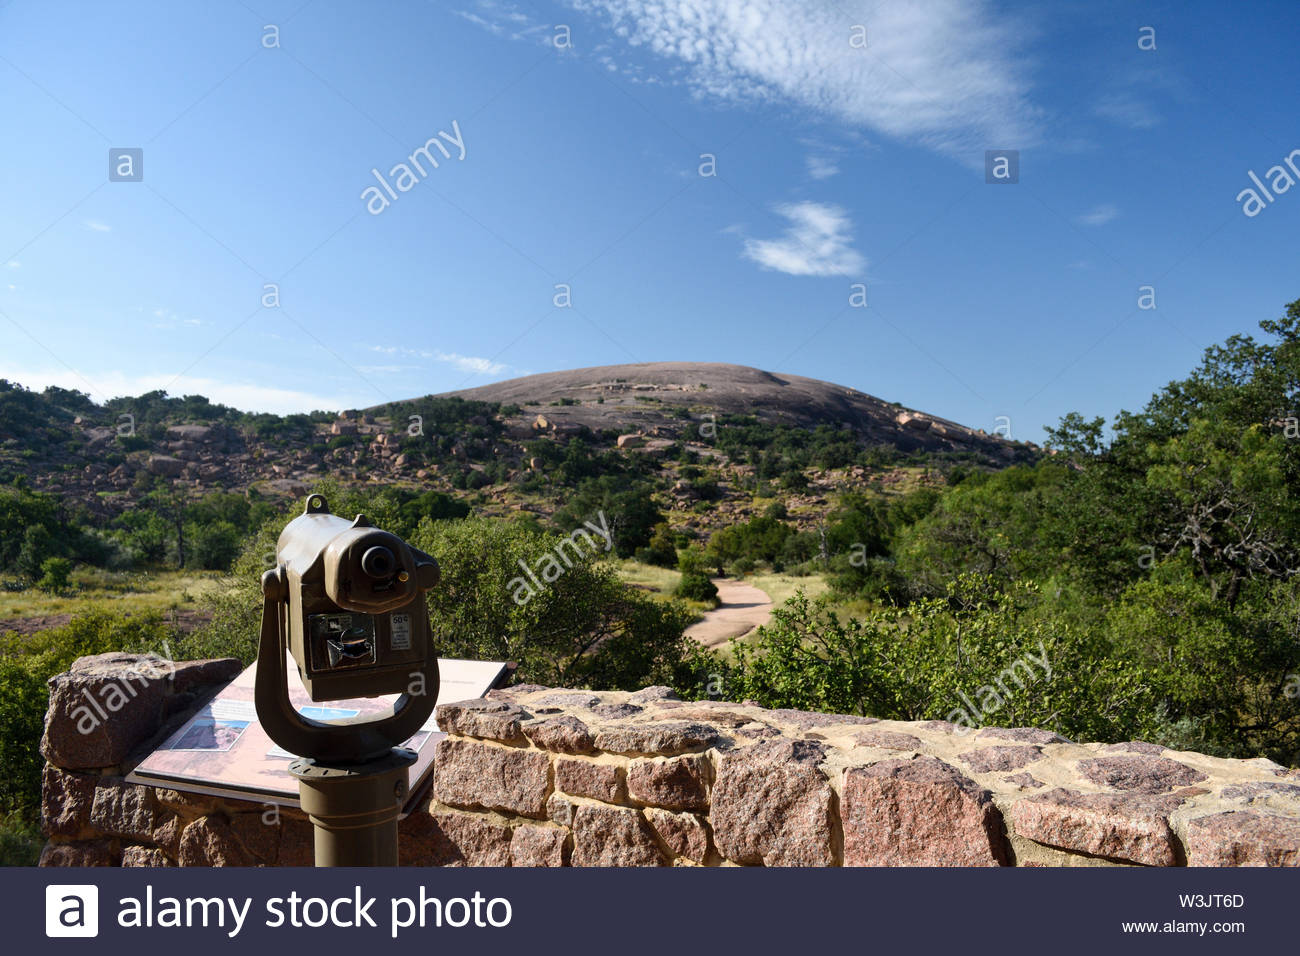 Enchanted Rock State Natural Area Gazebo Area. Enchanted Rock as viewed from the Gazebo. Interpretive signage, telescope, and rock wall. Trailhead - Stock Image